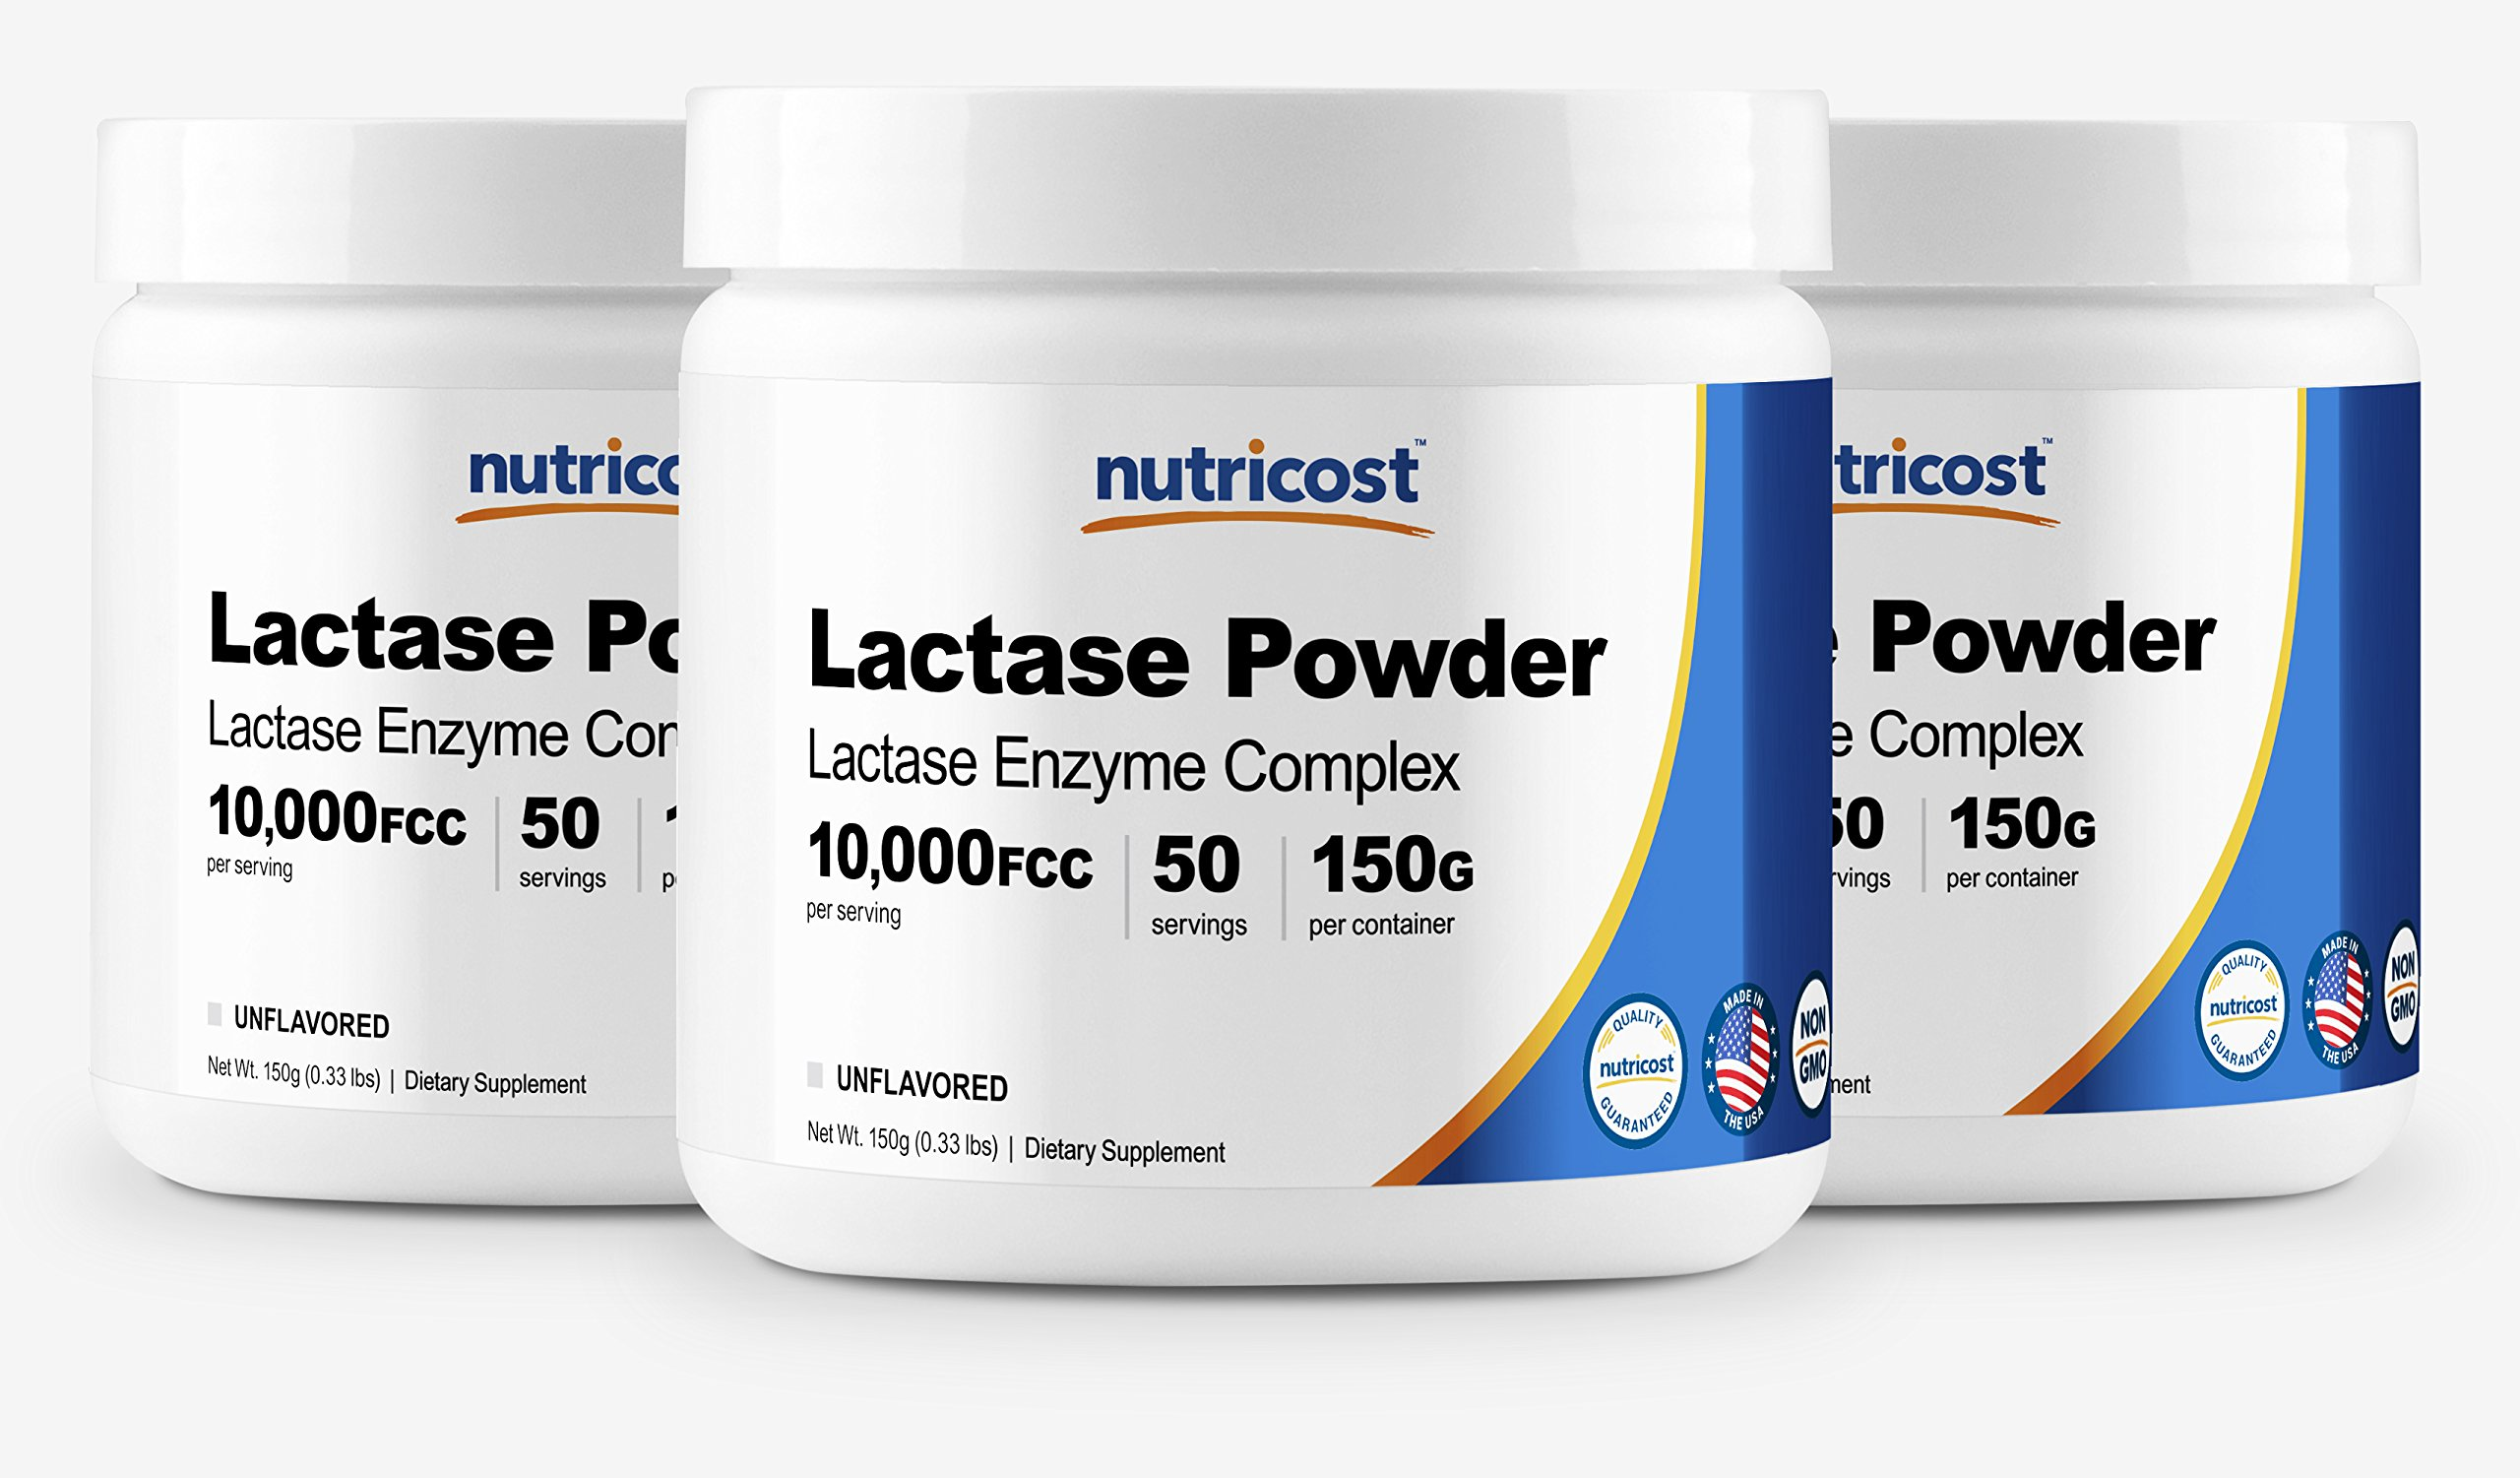 Nutricost High Quality Lactase Enzyme Powder 150G - Lactase Enzyme Complex (3 Bottles) - 10,000FCC Per Serving, Non GMO, Gluten Free